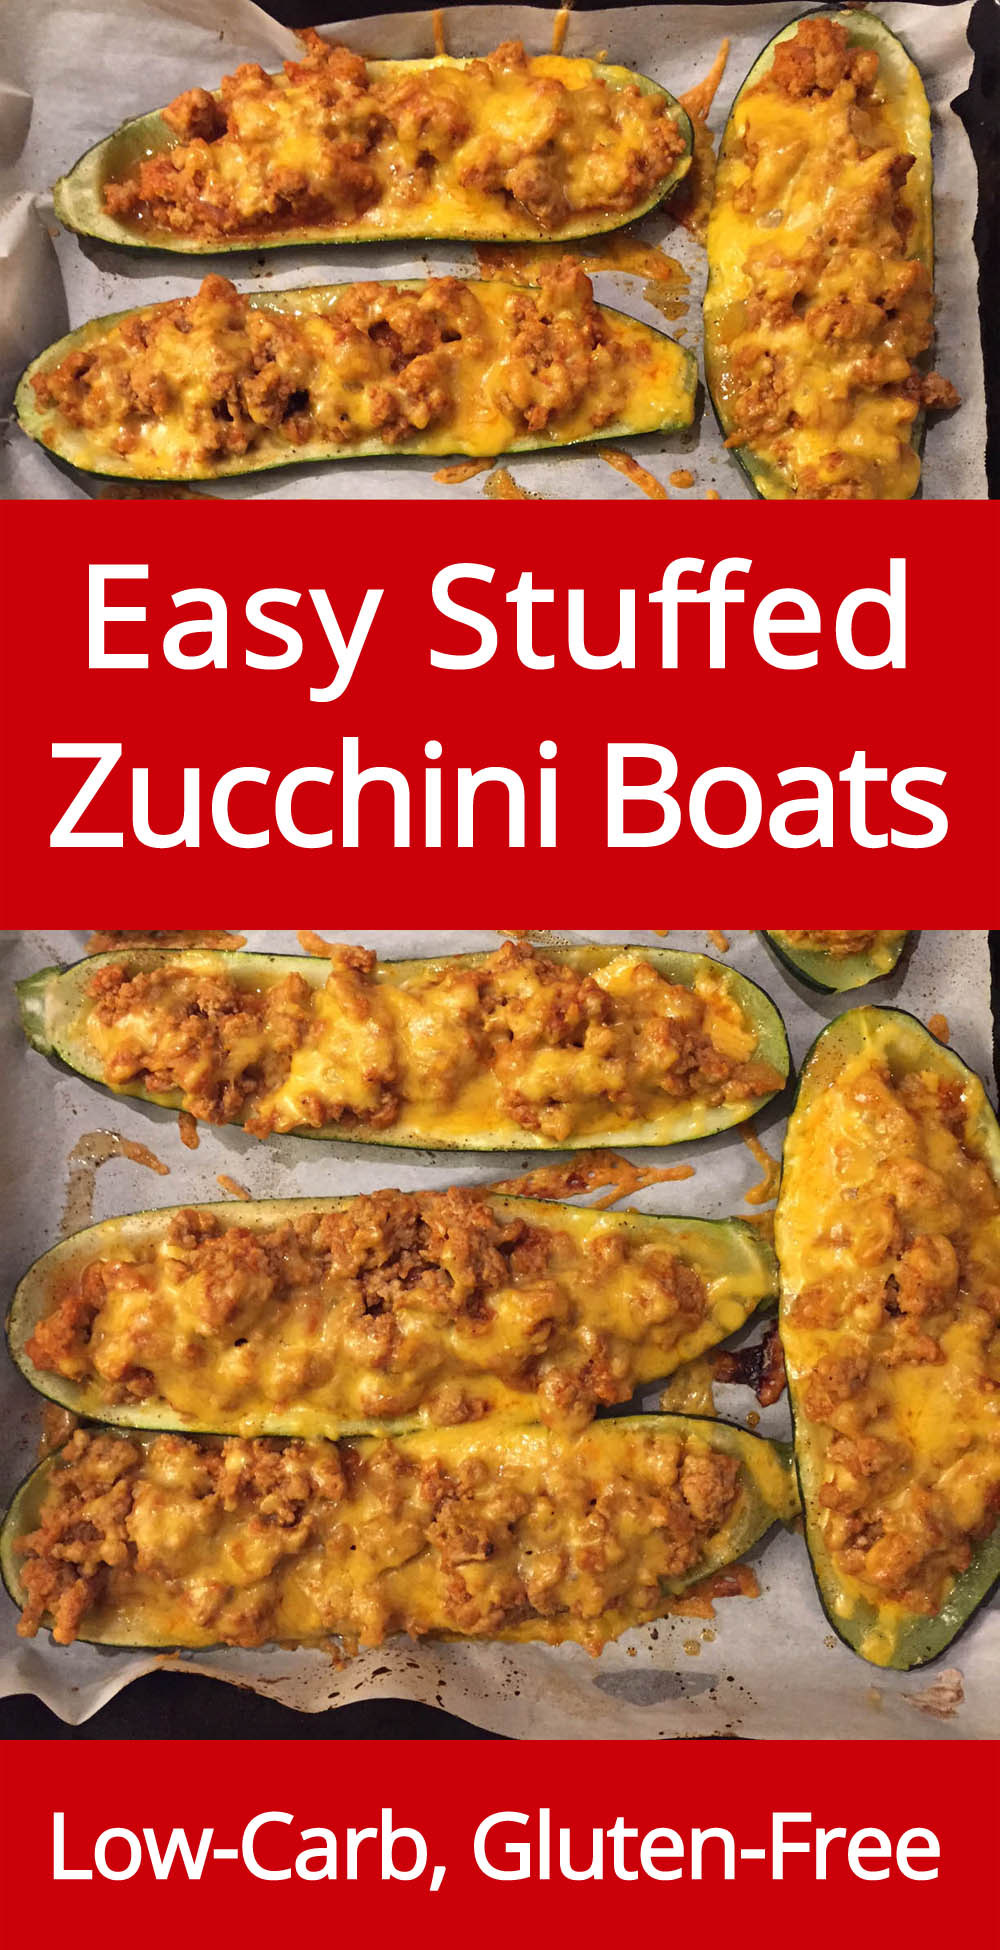 OMG I love these stuffed zucchini boats! So yummy and cheese! Perfect low-carb keto dinner!